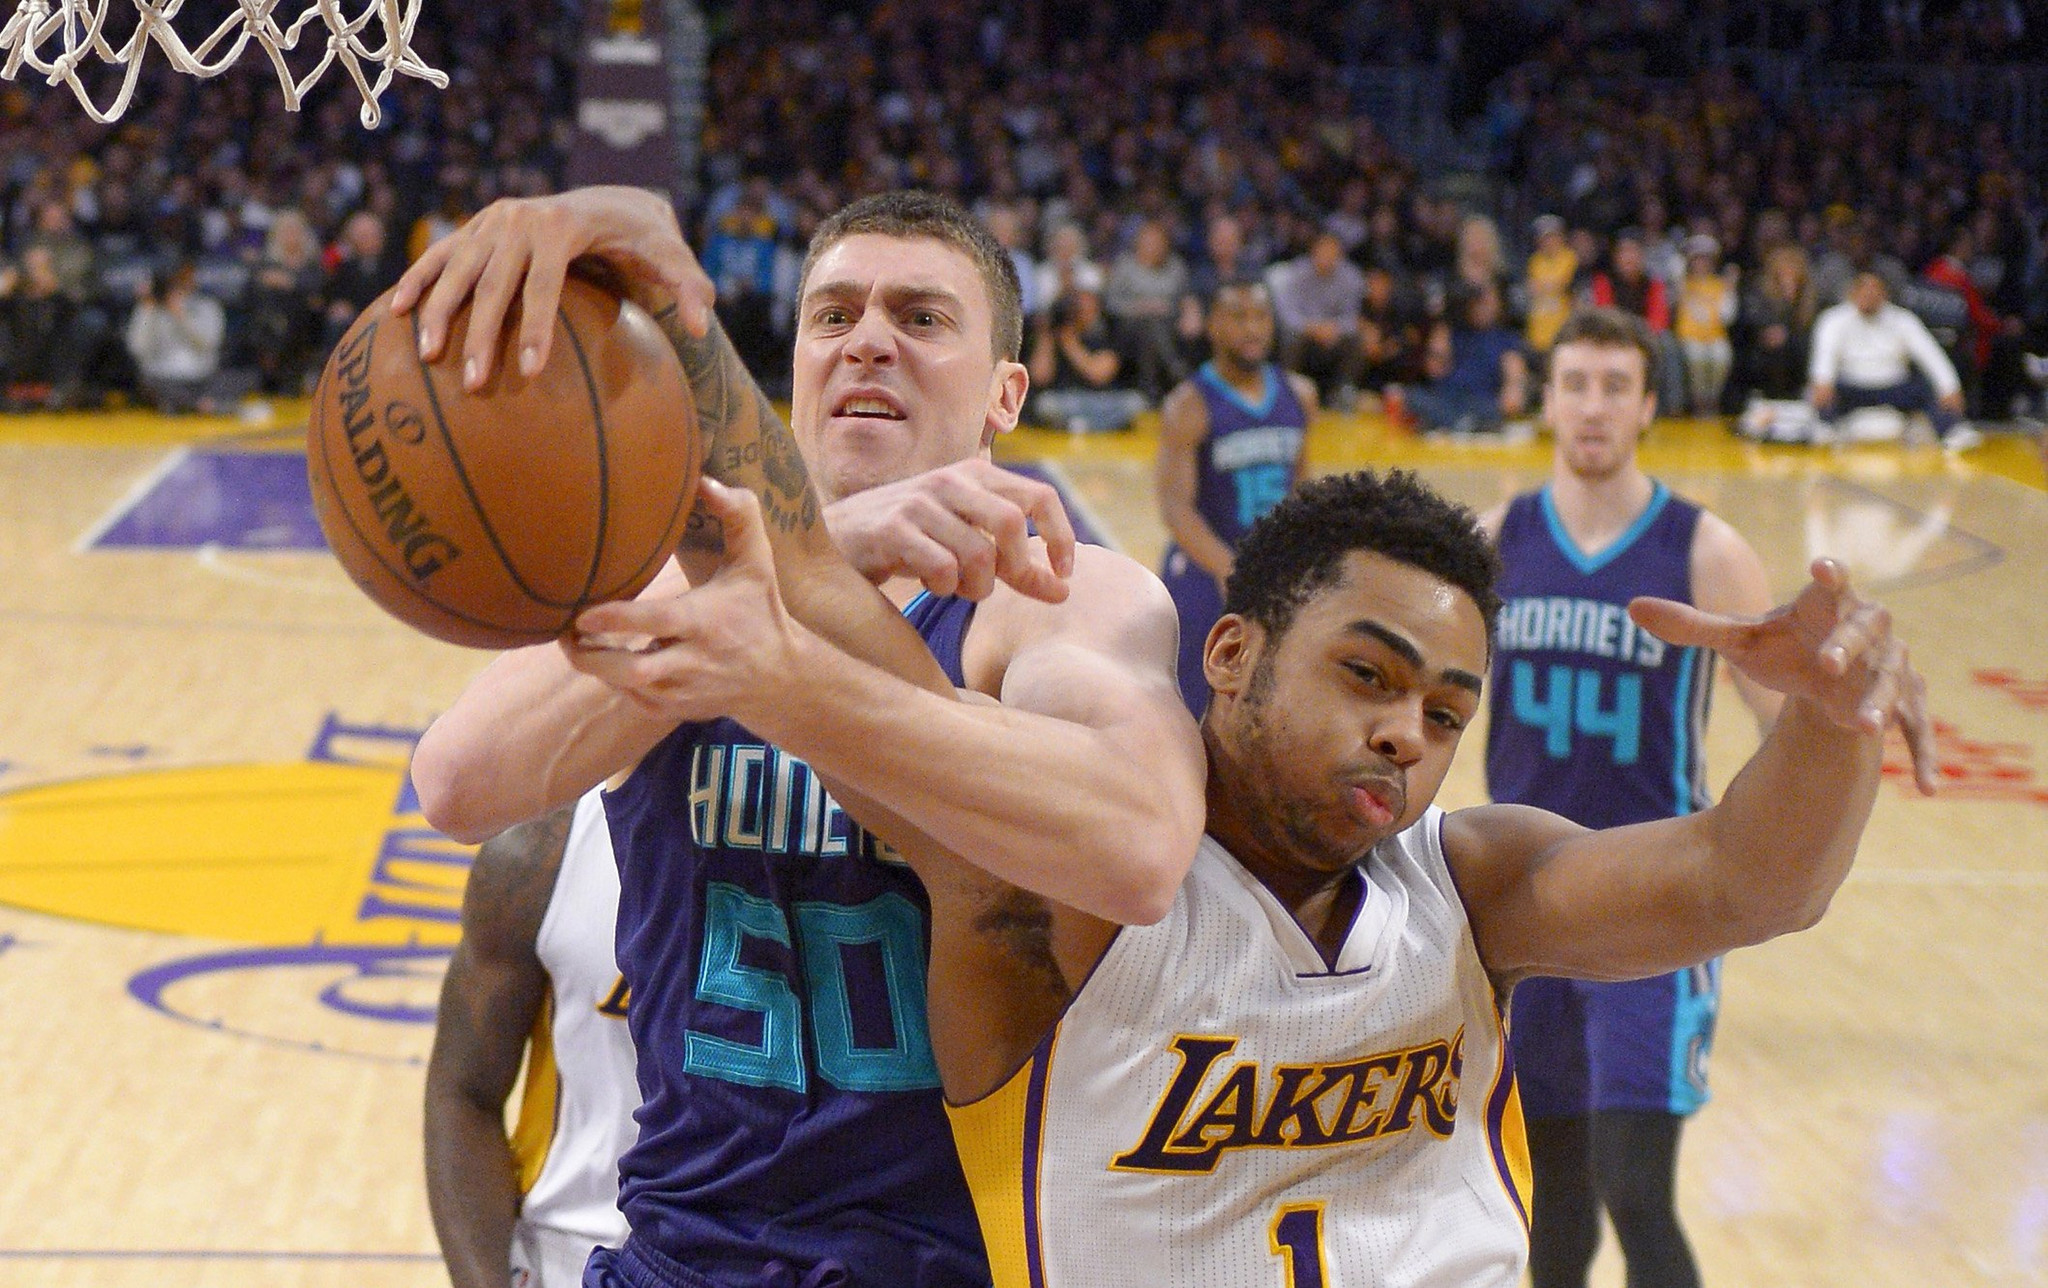 La-sp-lakers-hornets-20160201